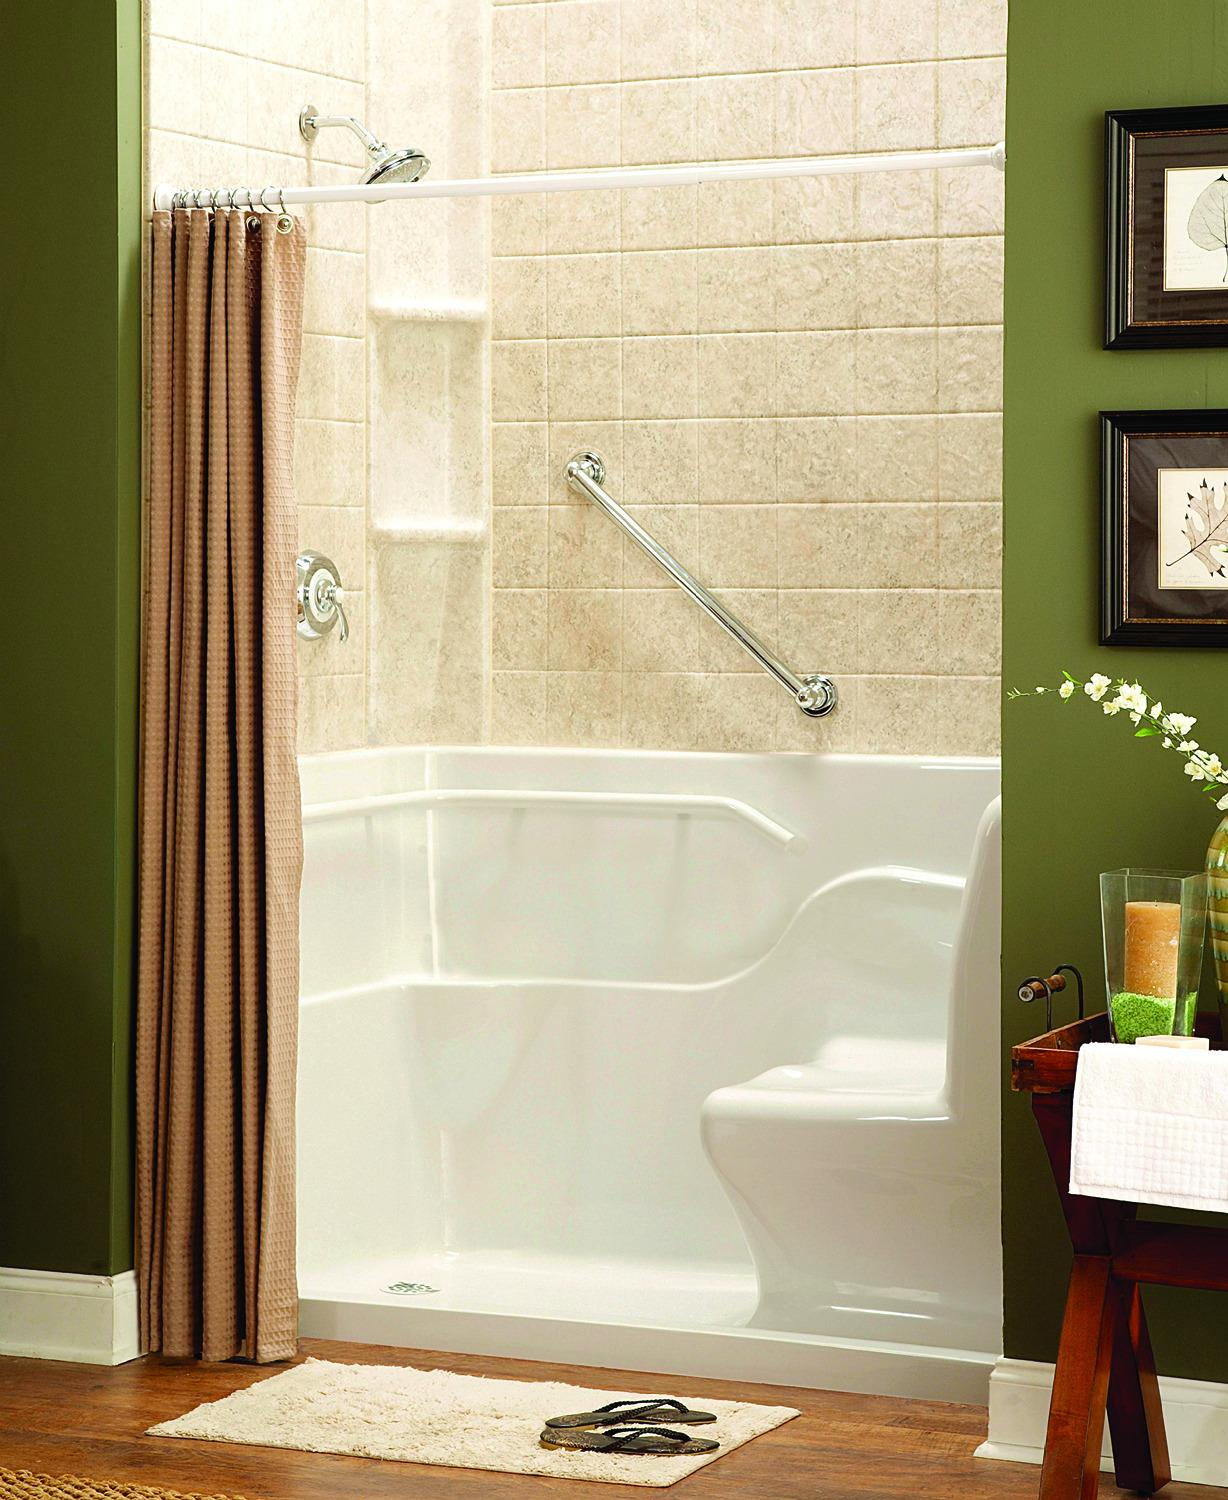 Superior Bath and Shower image 3